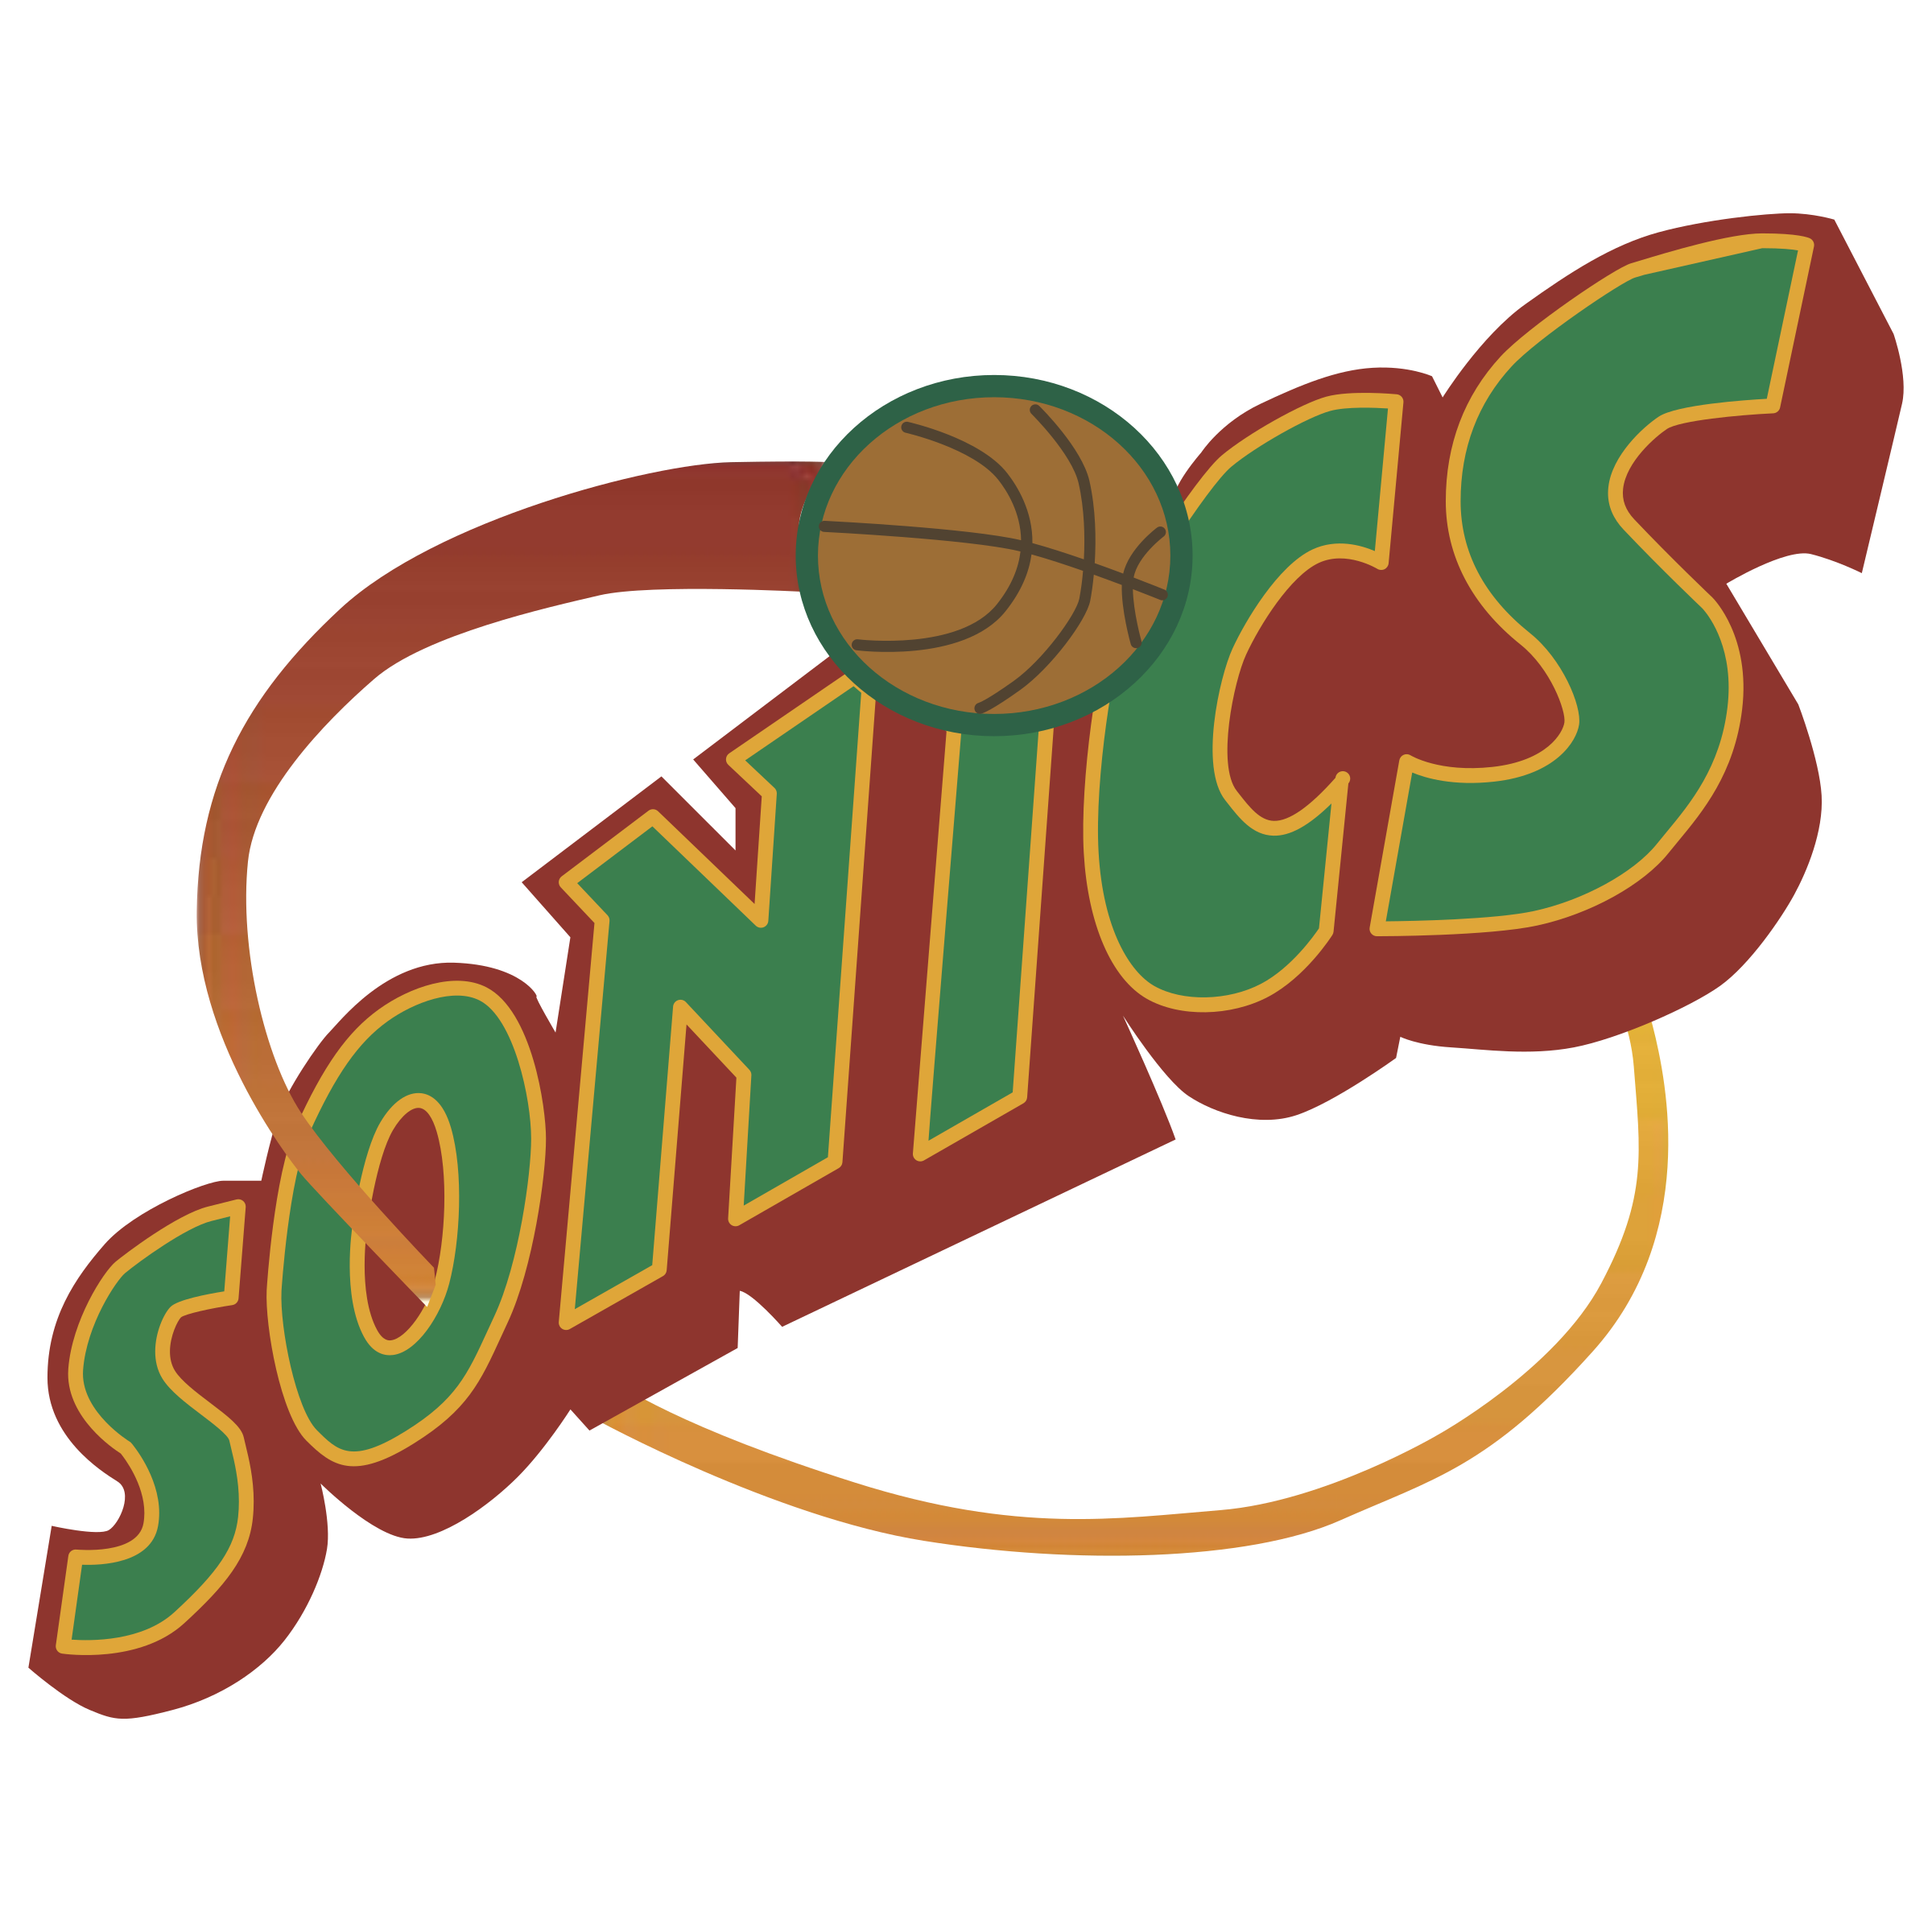 seattle supersonics logo png transparent svg vector freebie supply rh freebiesupply com supersonic logistics tracking supersonic logistics manhattan